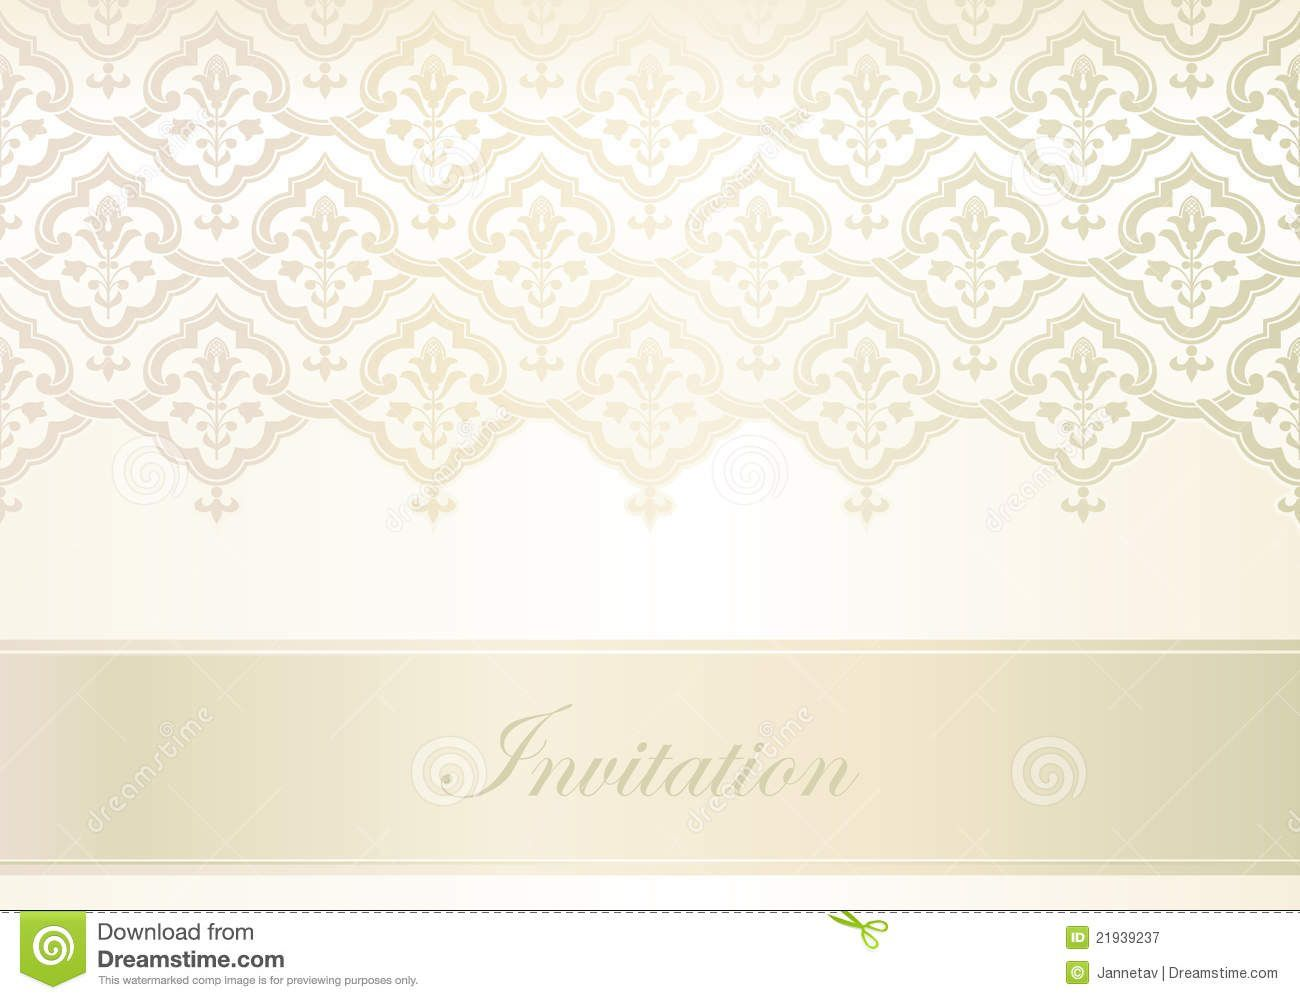 009 Astounding Free Download Invitation Card Format High Definition  Marriage In Word Psd WeddingFull